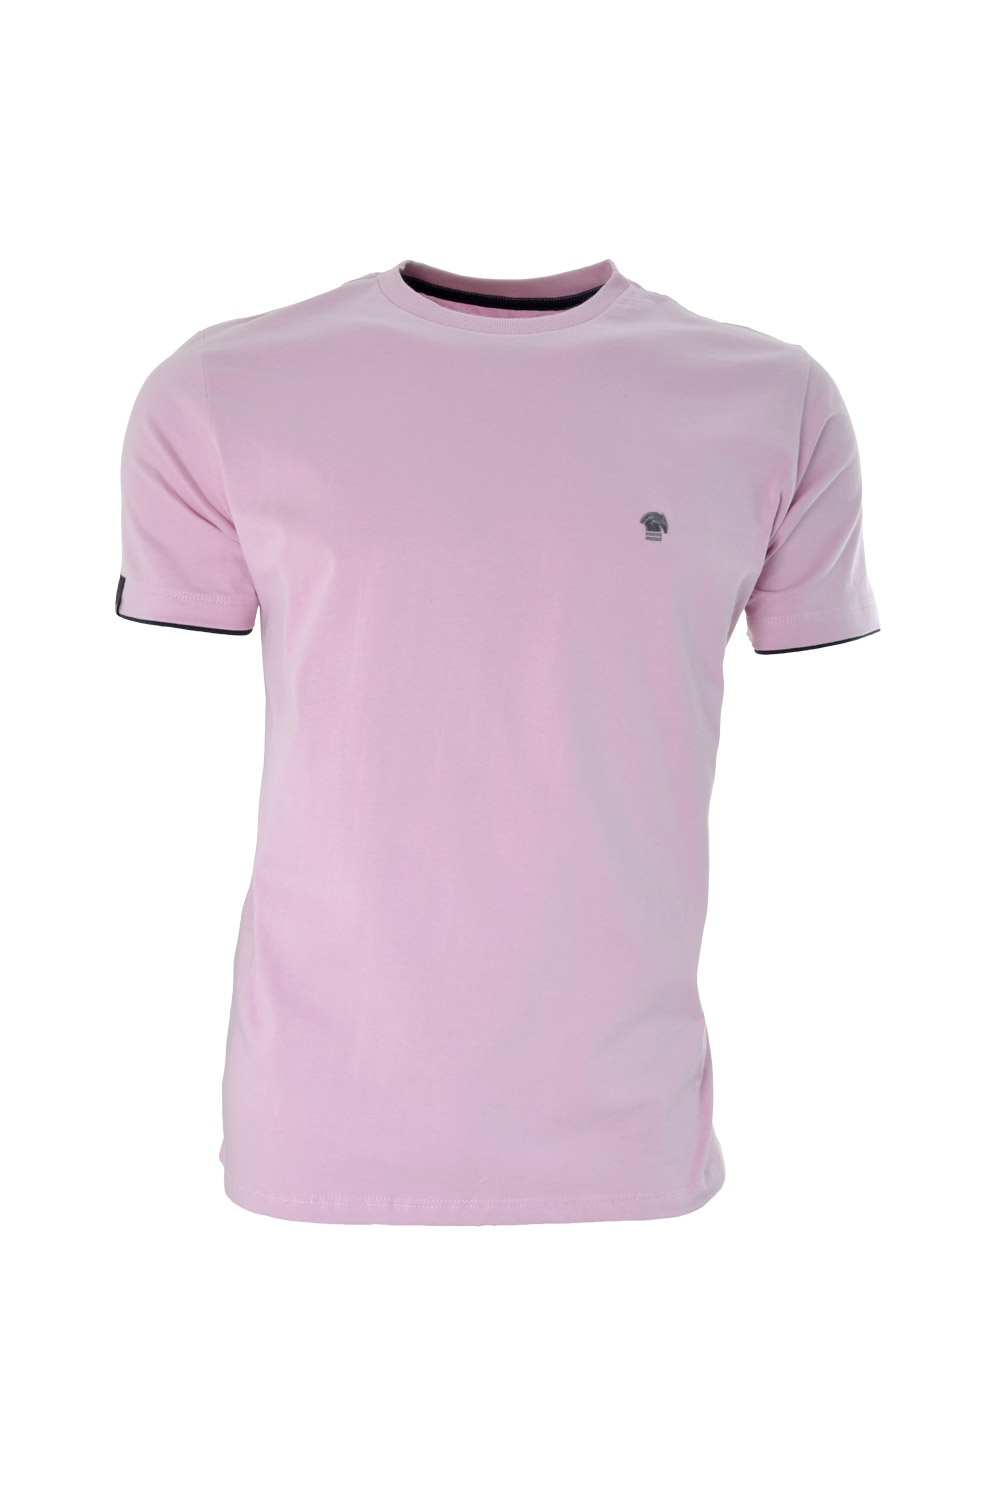 CAMISETA MC BLUES SUPER SLIM ALGODAO GOLA C LISO ROSA CLARO